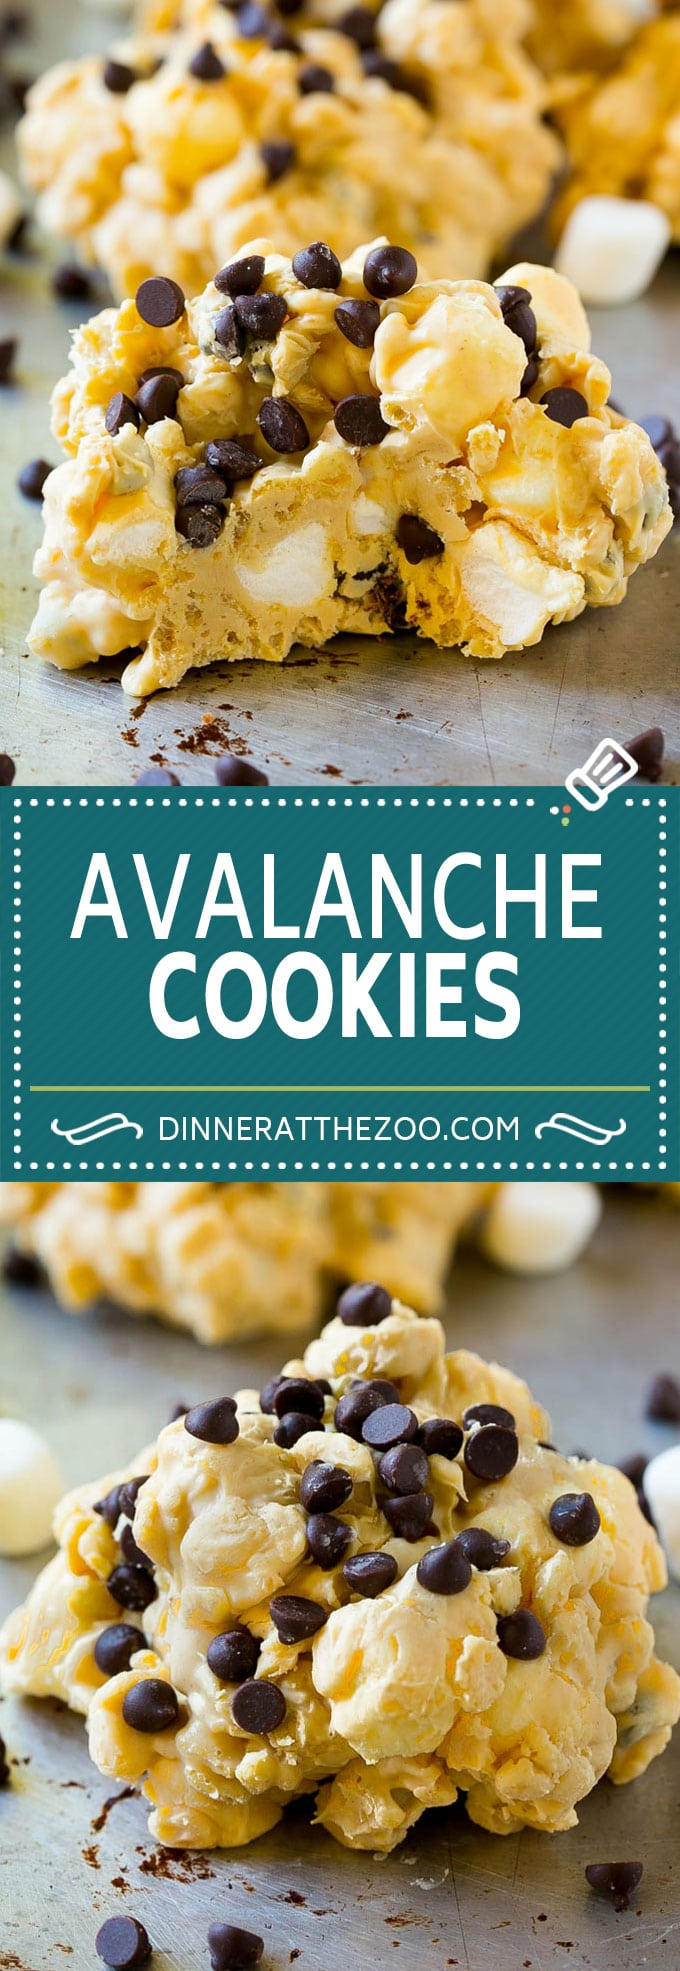 Avalanche Cookies Recipe | No Bake Cookie Recipe | Easy Cookie Recipe | Avalanche Bark #cookies #nobake #peanutbutter #marshmallow #chocolate #dessert #dinneratthezoo